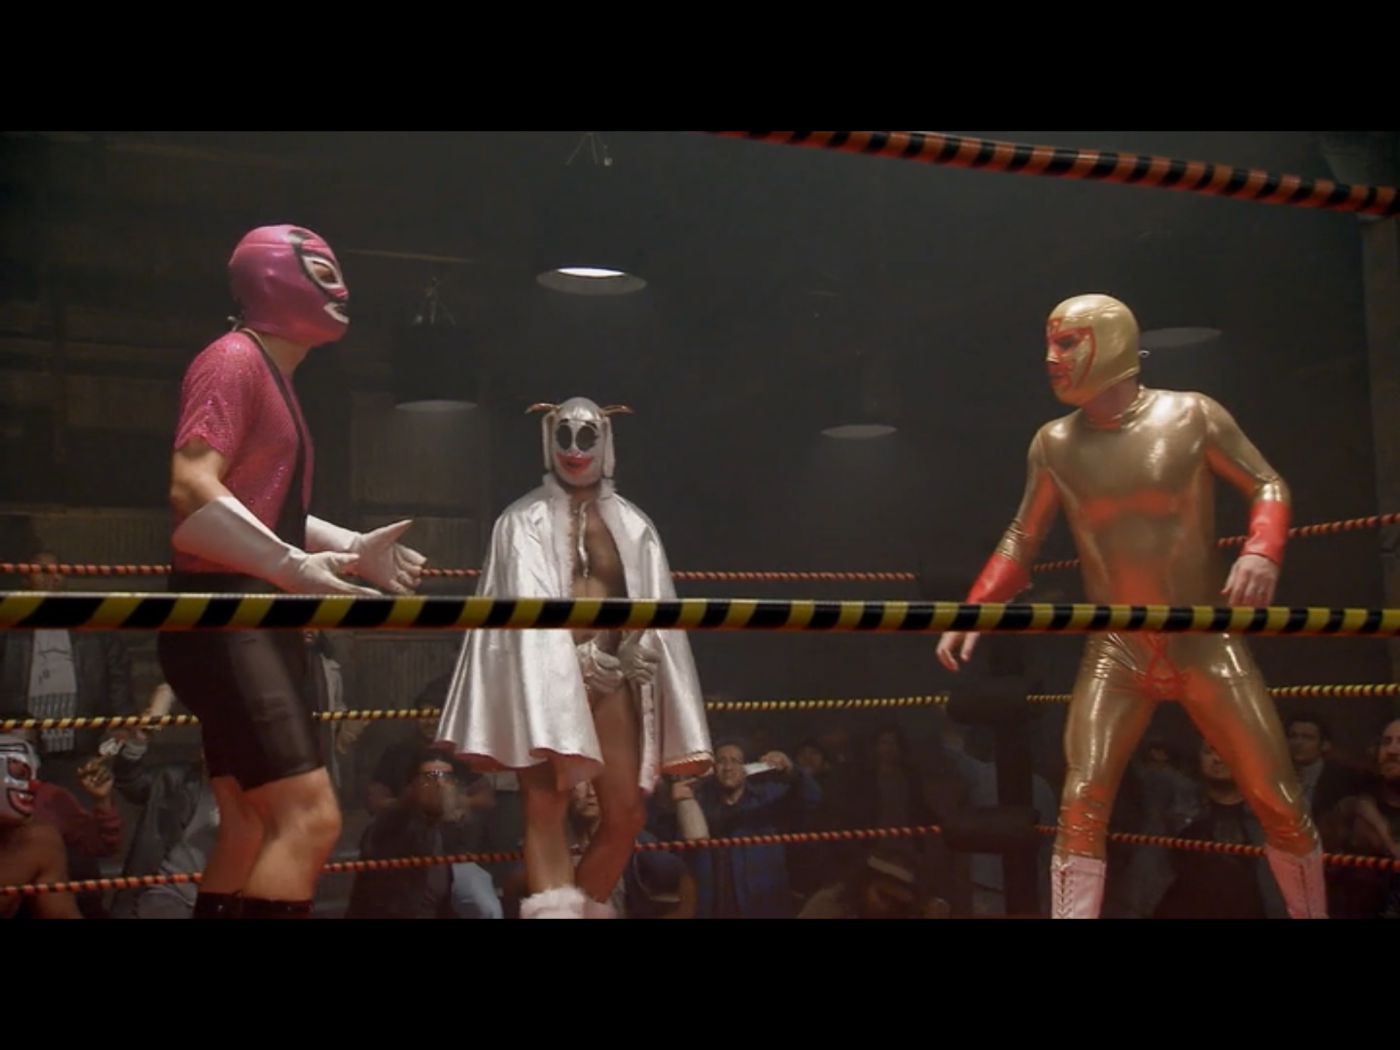 10 Count! Wrestling-Themed Sitcom Episodes